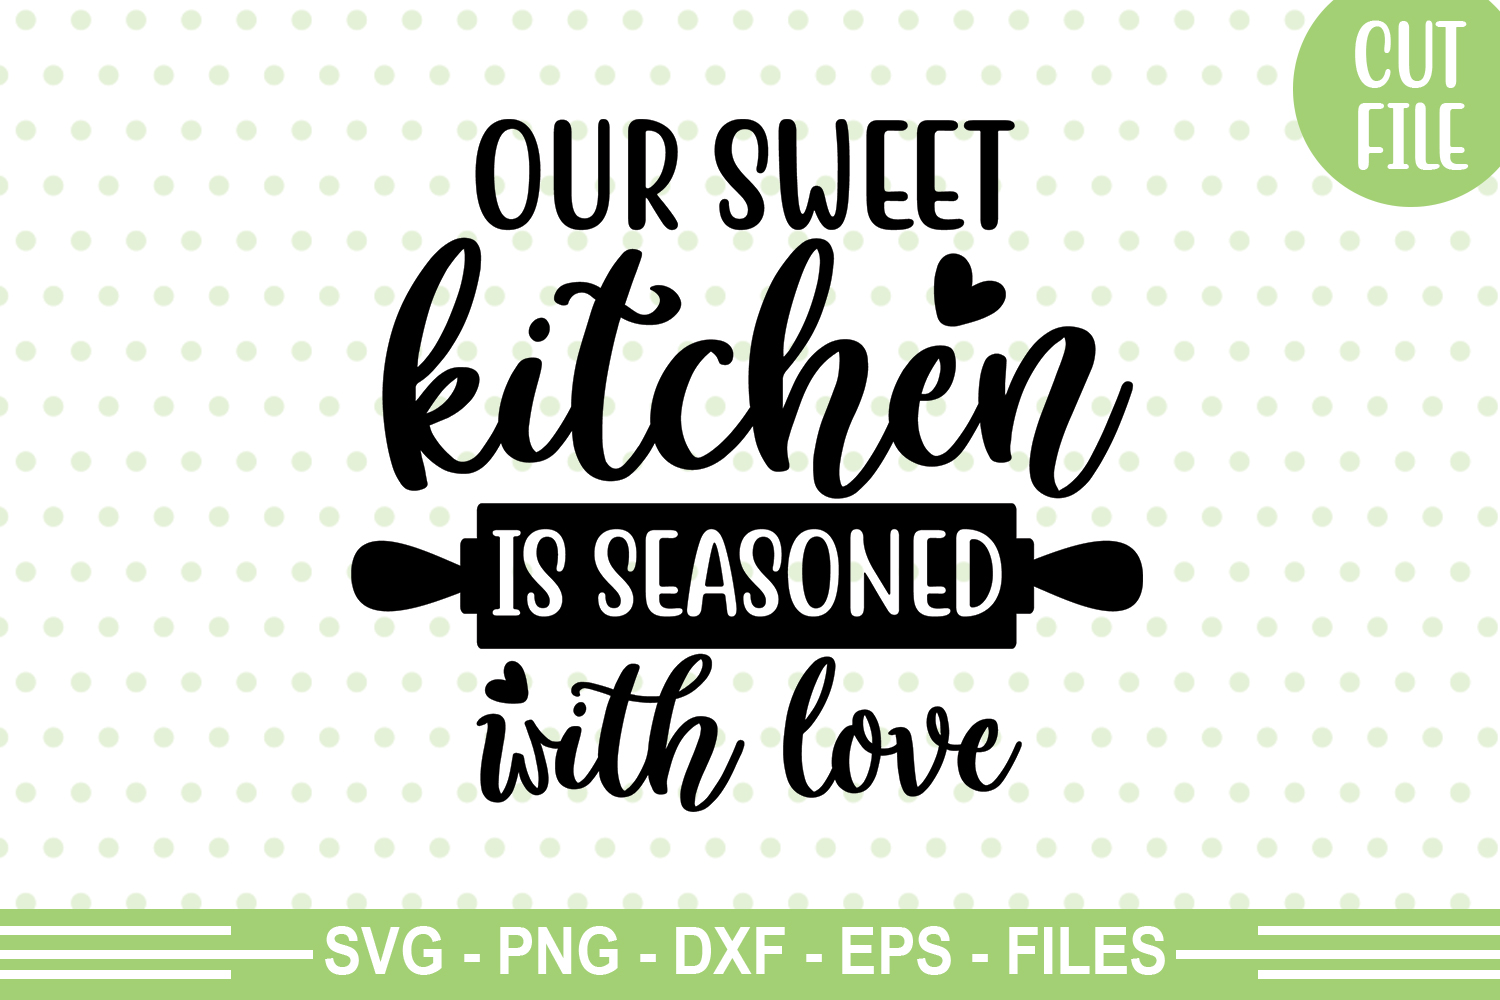 Download Free Our Sweet Kitchen Is Seasoned With Love Graphic By Svgbundle Net for Cricut Explore, Silhouette and other cutting machines.